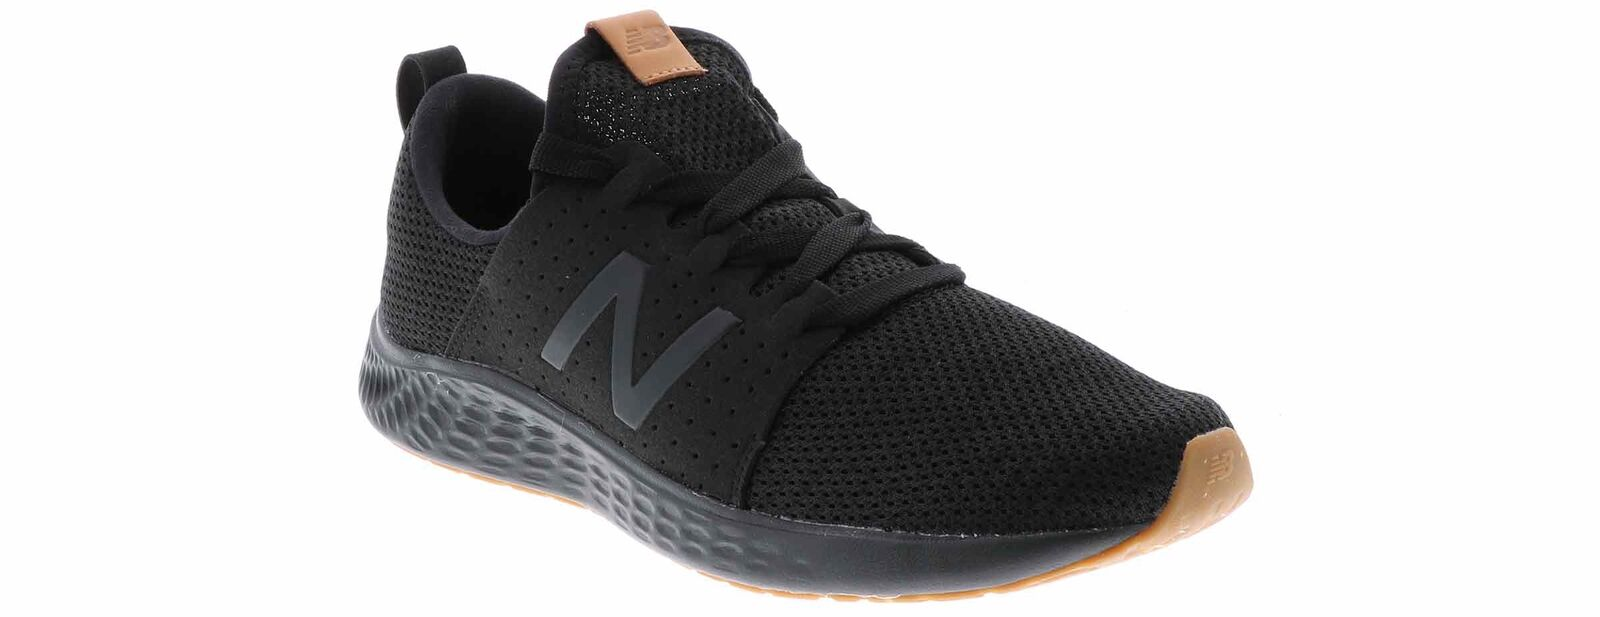 Men's New Balance Fresh Foam Arishi NXT Wide